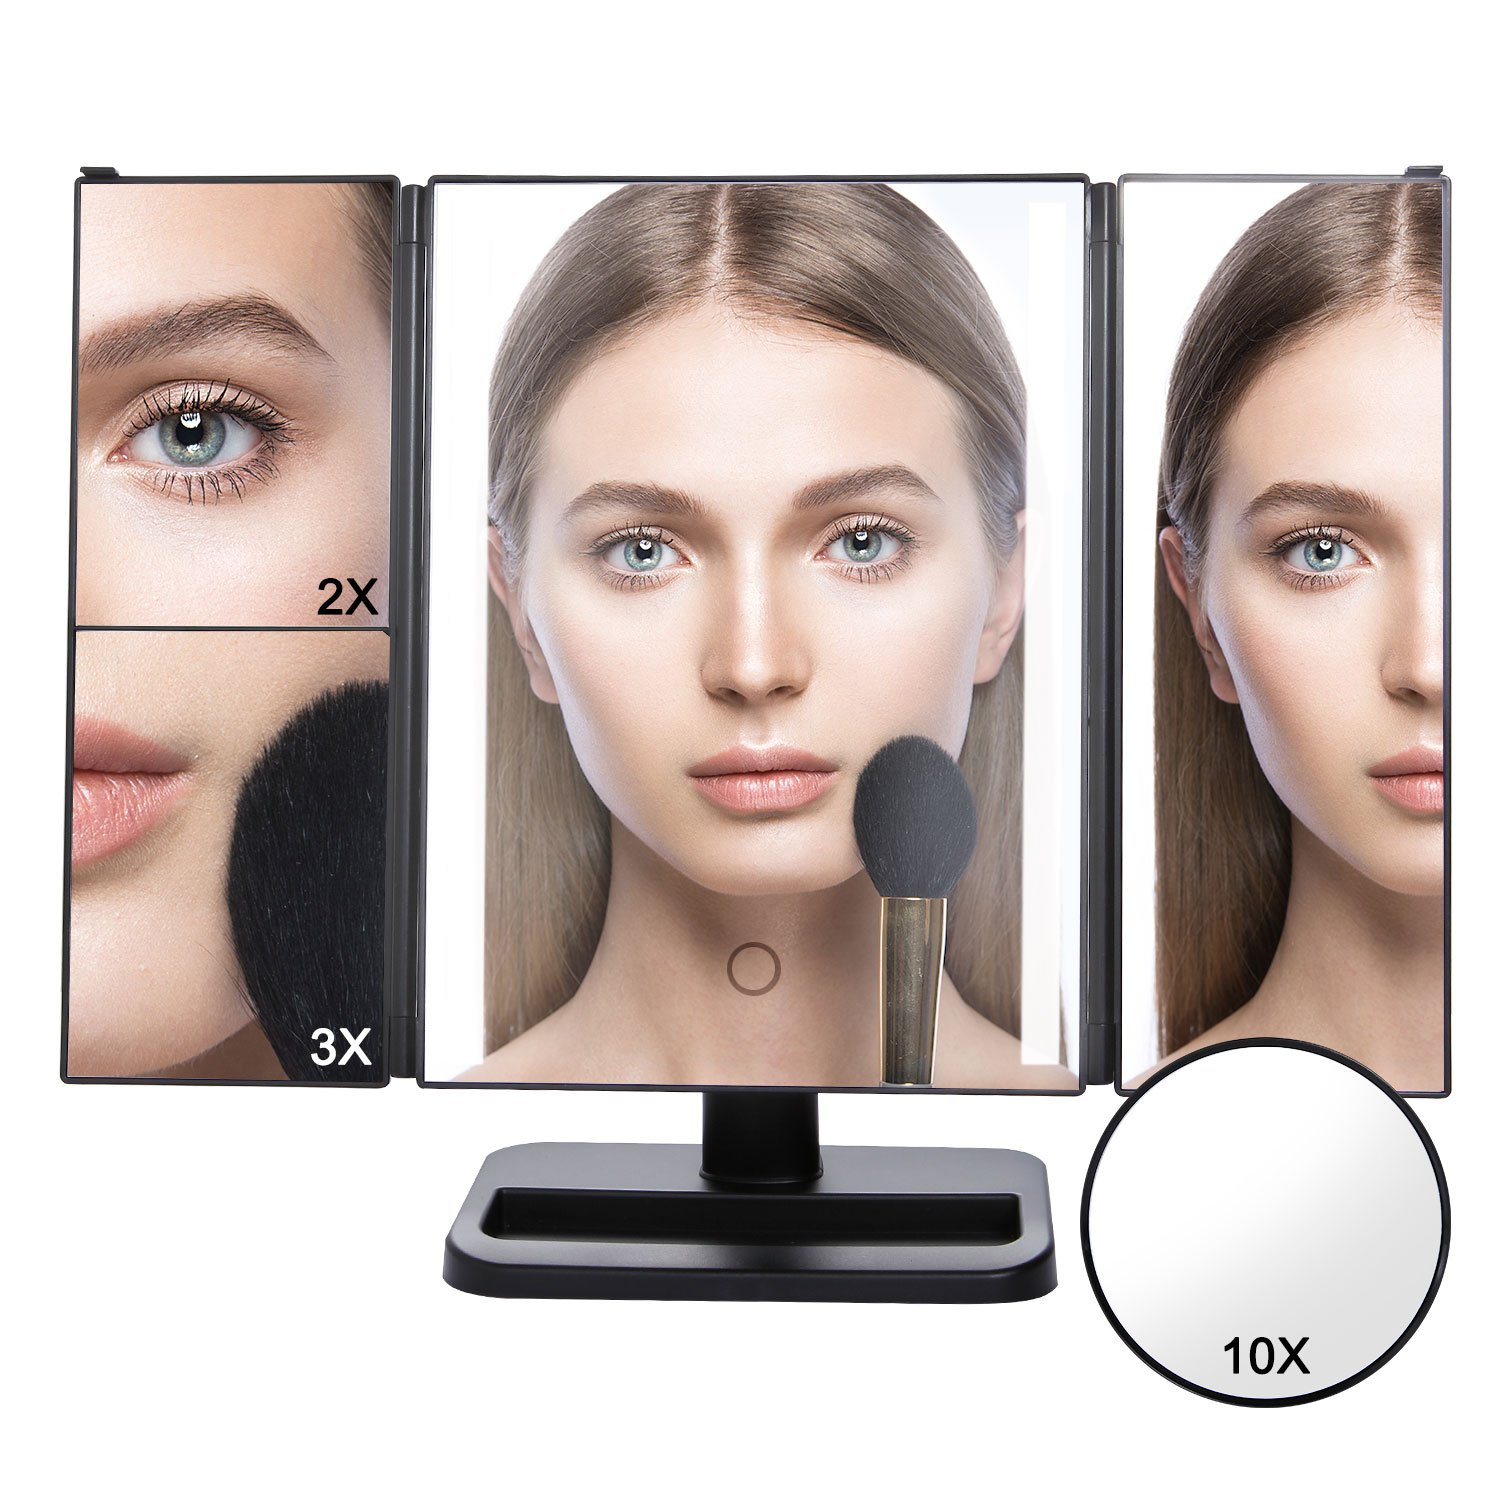 Lifewit Vanity Makeup Mirror Trifold 24 Led Lighted with Touch Screen, 10X 3X 2X 1X Magnification and USB Charging, 180° Adjustable Stand for Countertop Cosmetic Makeup (Black)